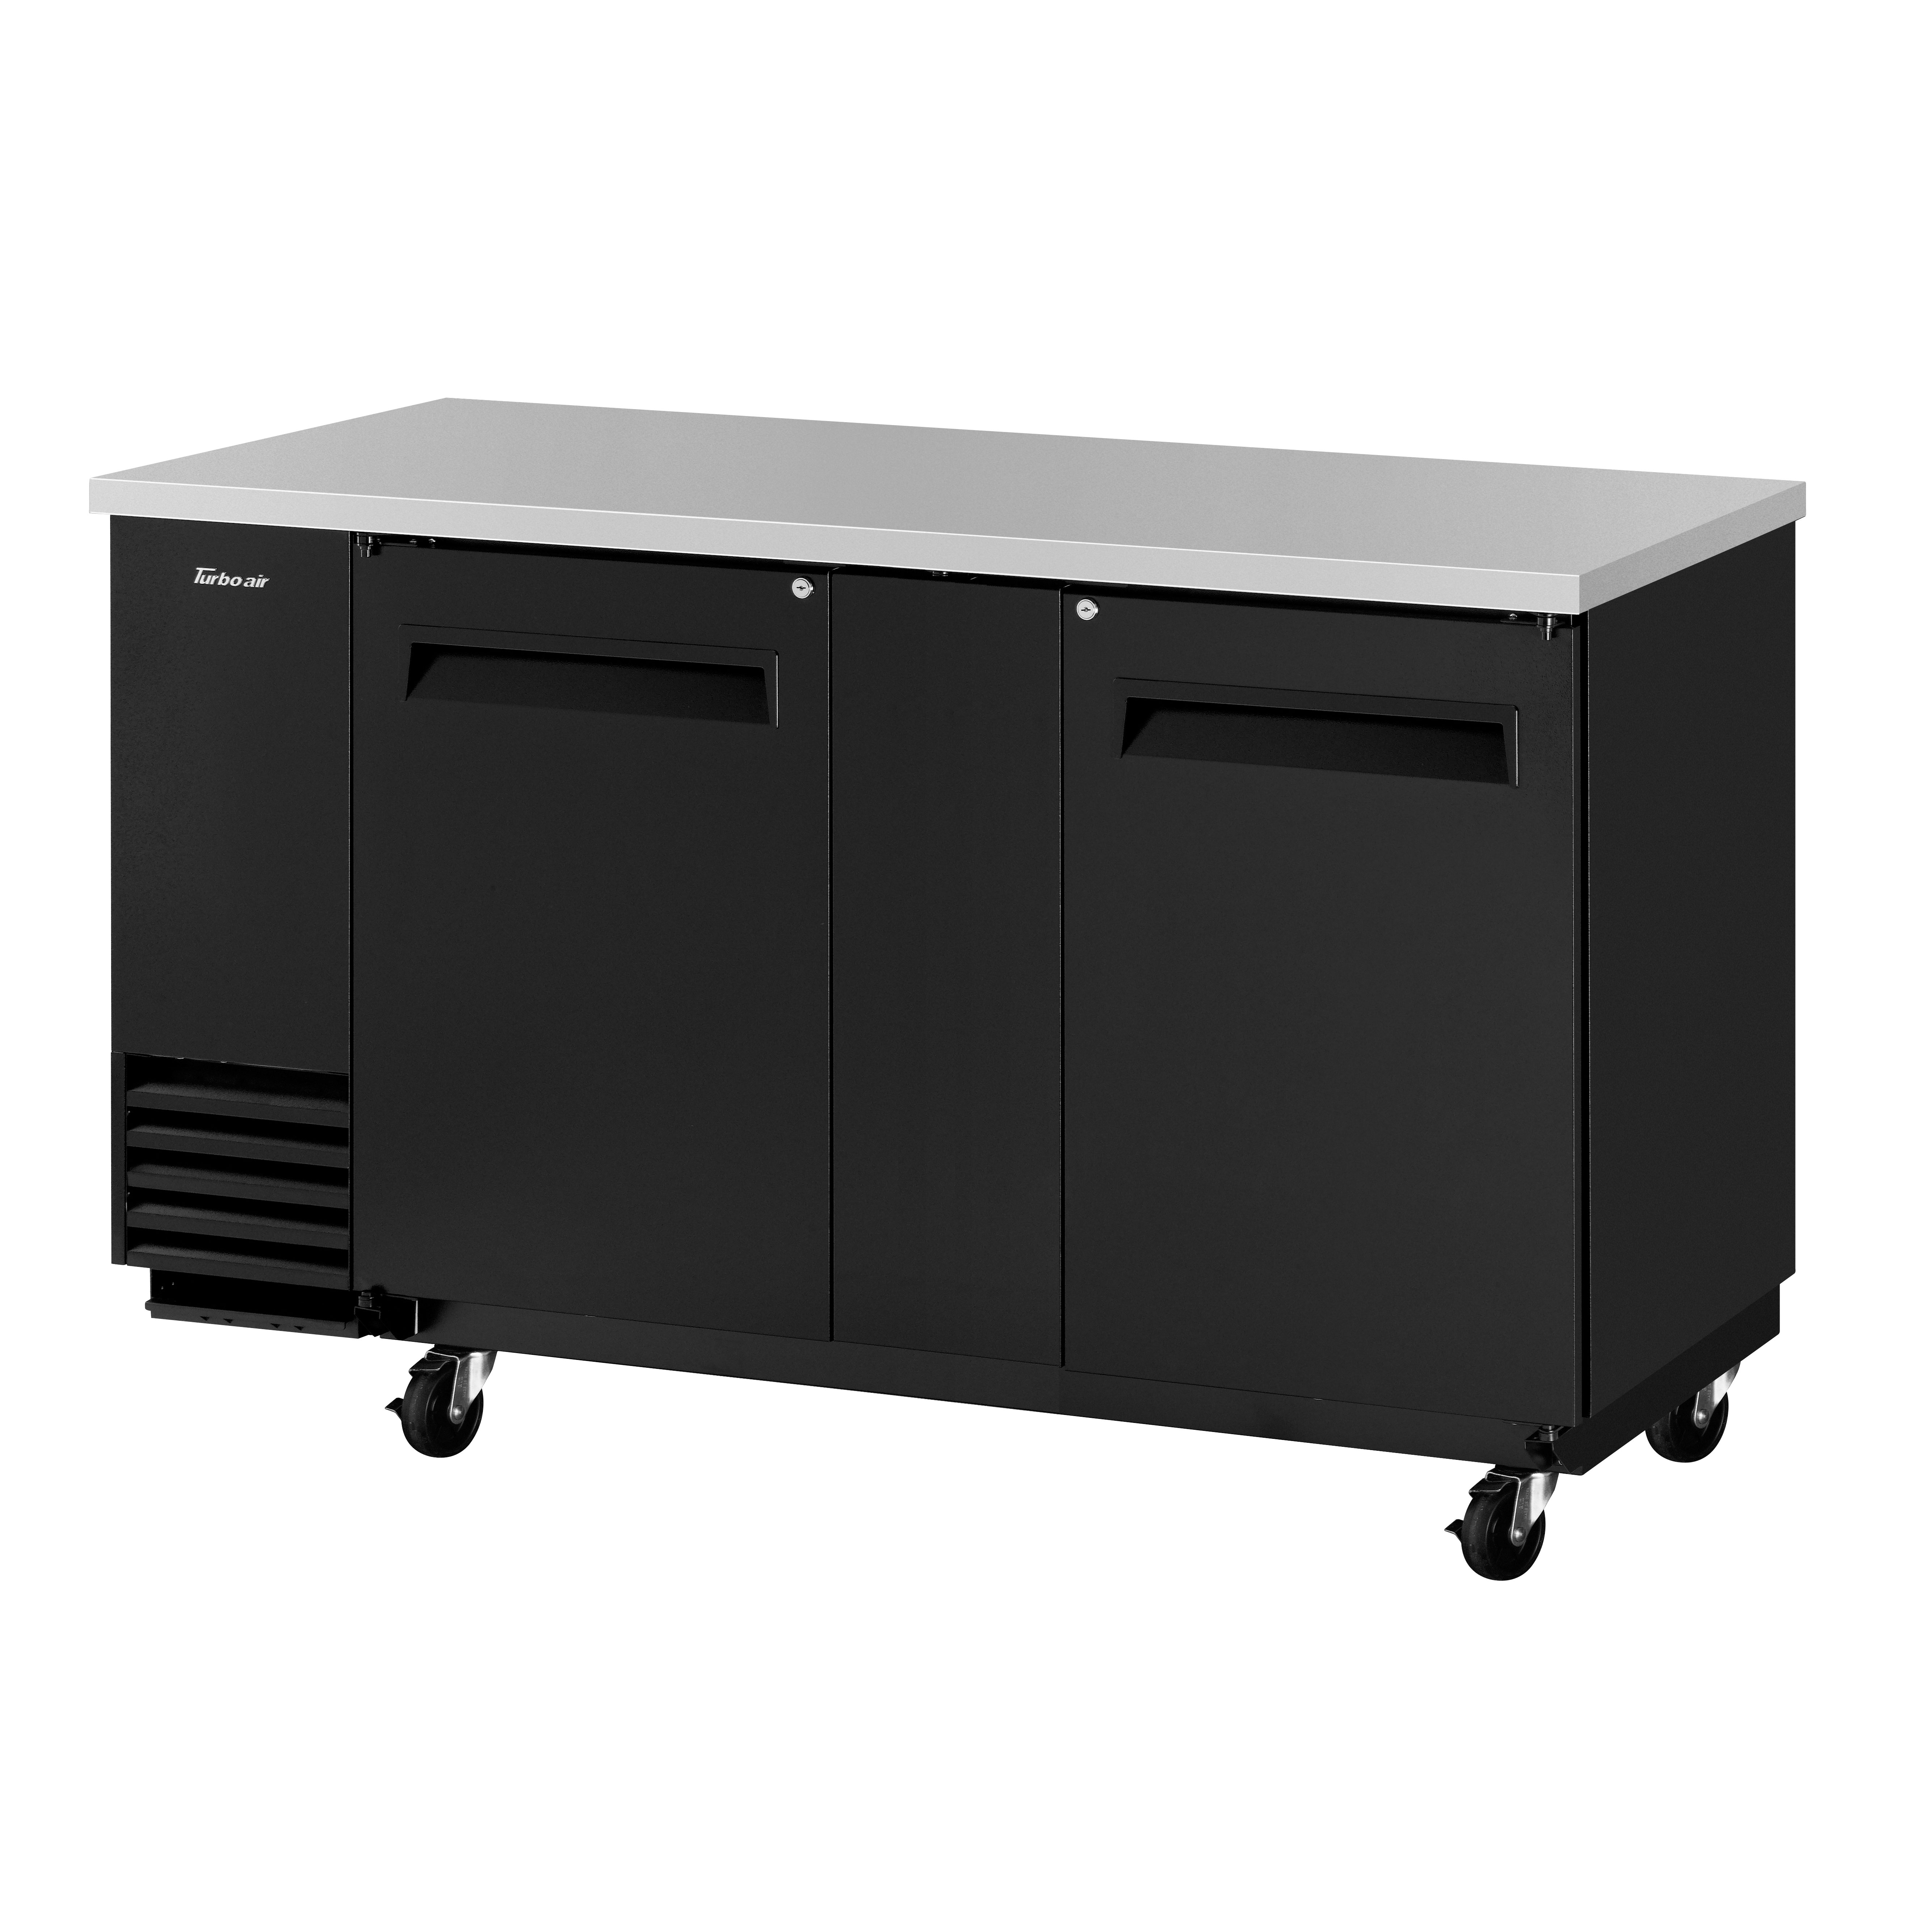 Turbo Air TBB-3SB-N6 back bar cabinet, refrigerated